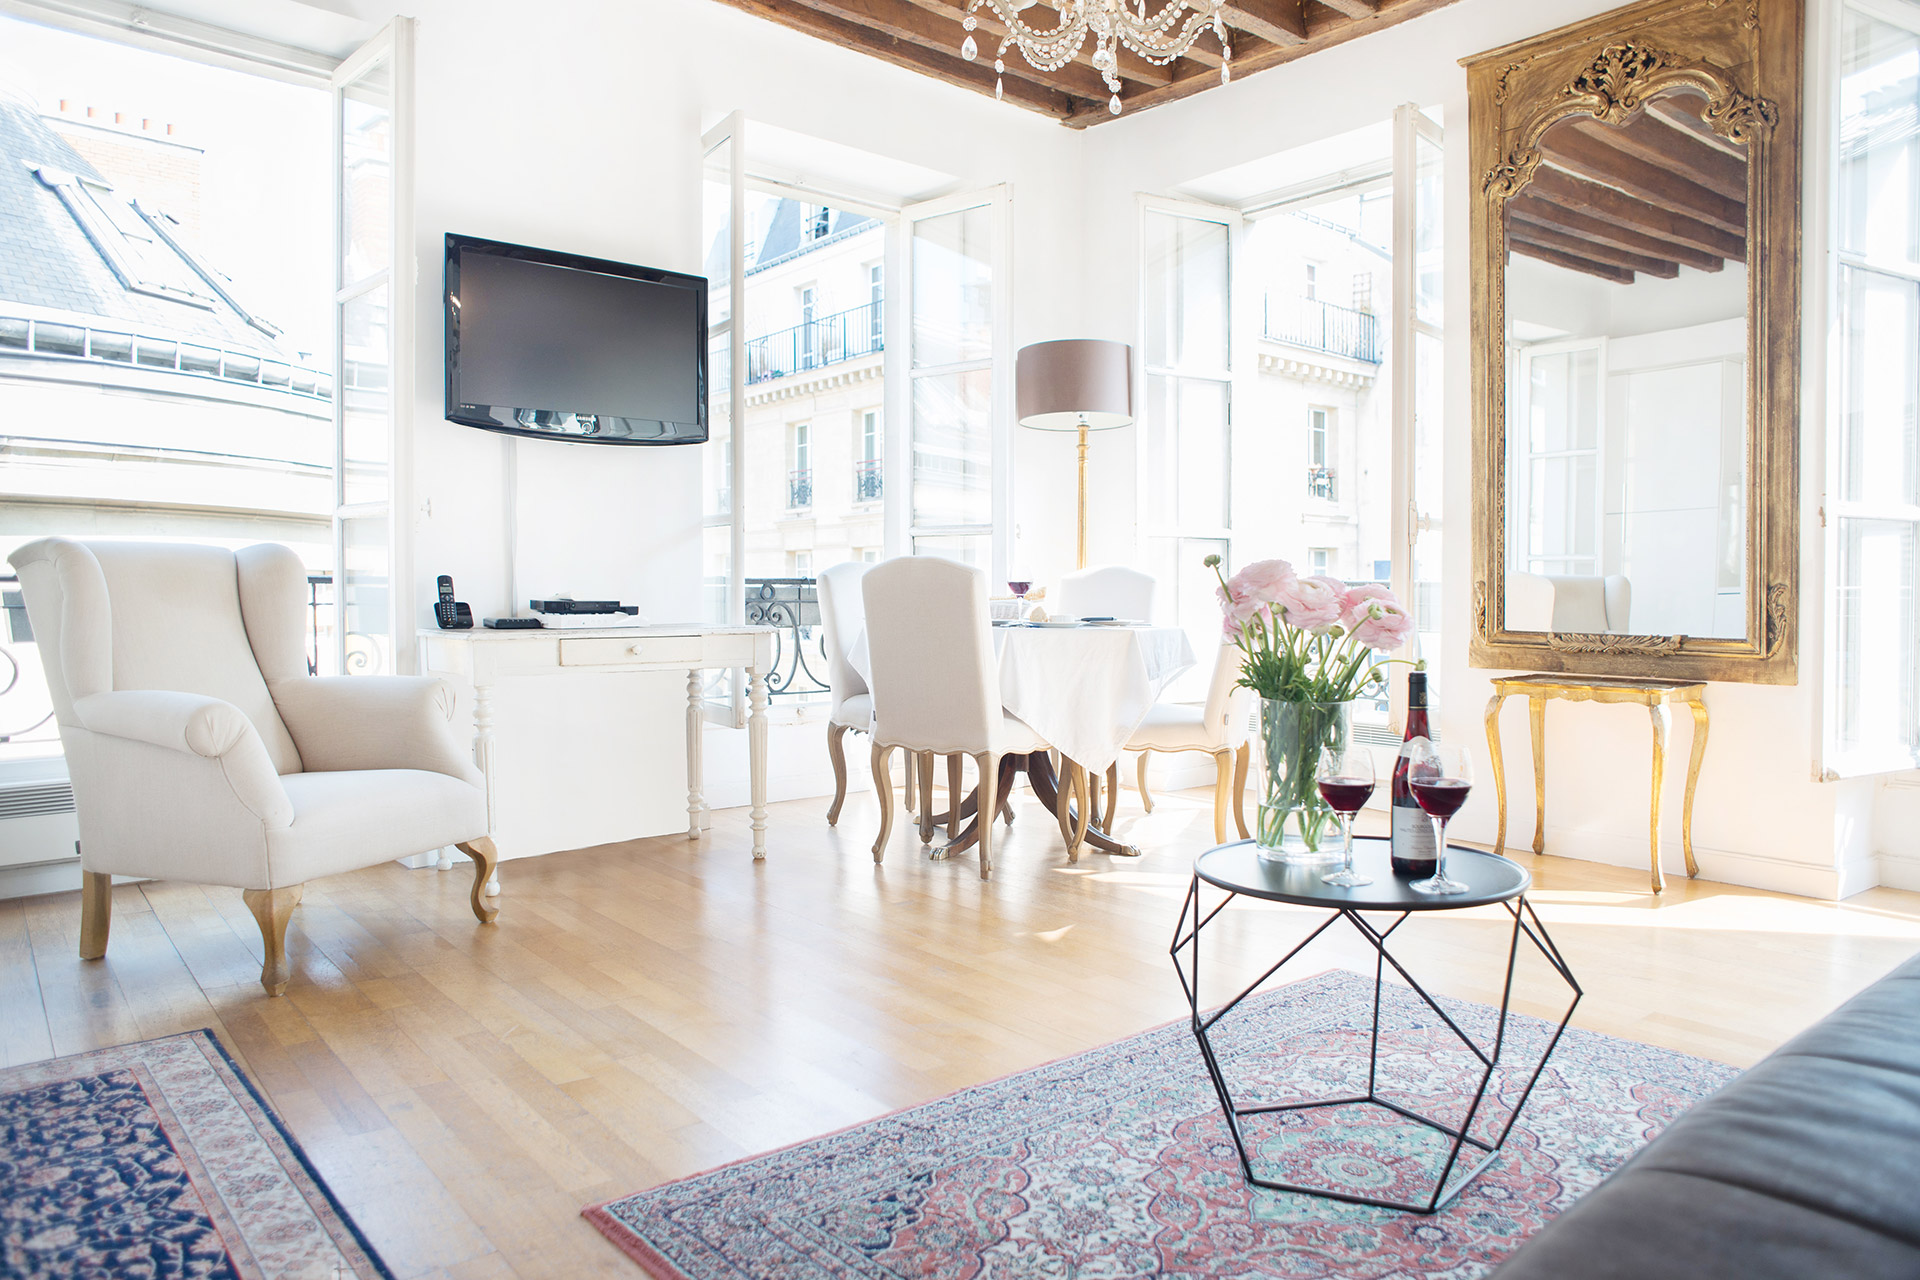 Seating area in the Forez vacation rental offered by Paris Perfect